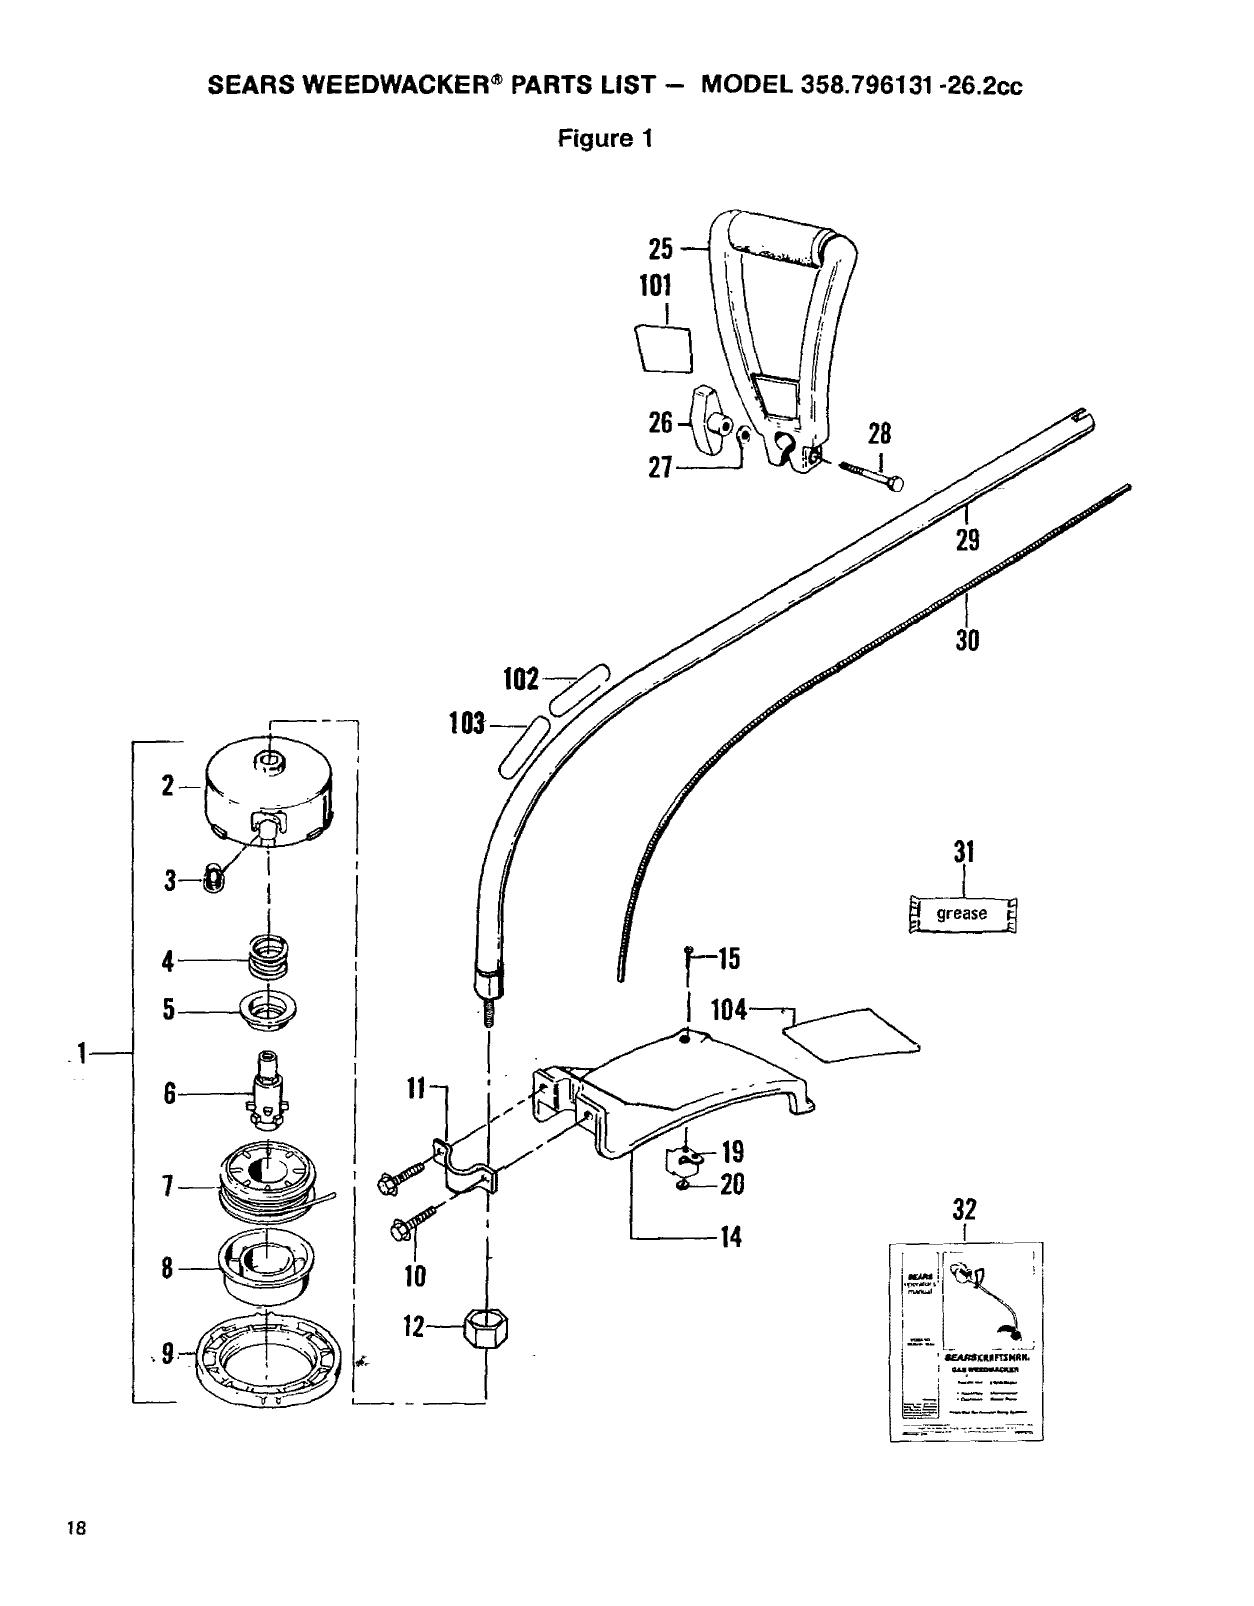 Page 18 of Craftsman Trimmer 358.796131- 26.2CC User Guide